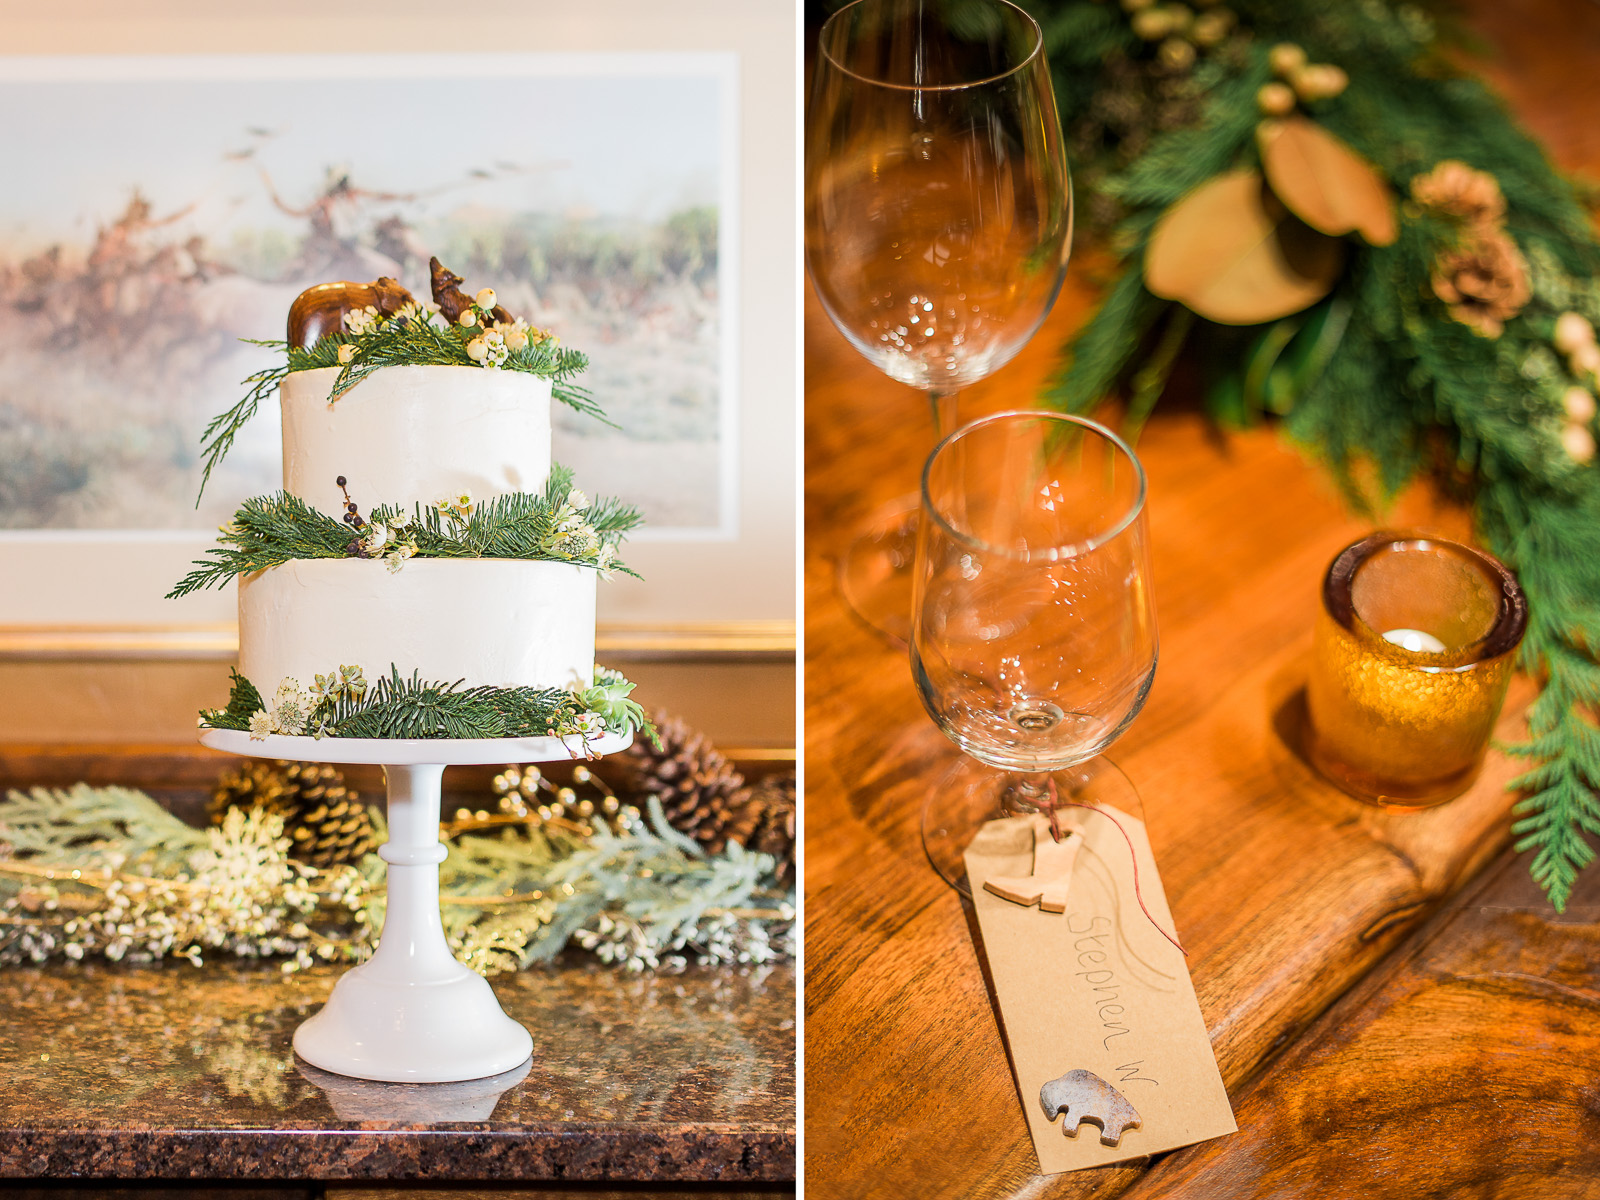 Jackson Hole Wyoming Winter Destination Wedding and Elopement at the Rustic Inn by Wyoming wedding photographer, Megan Lee Photography.